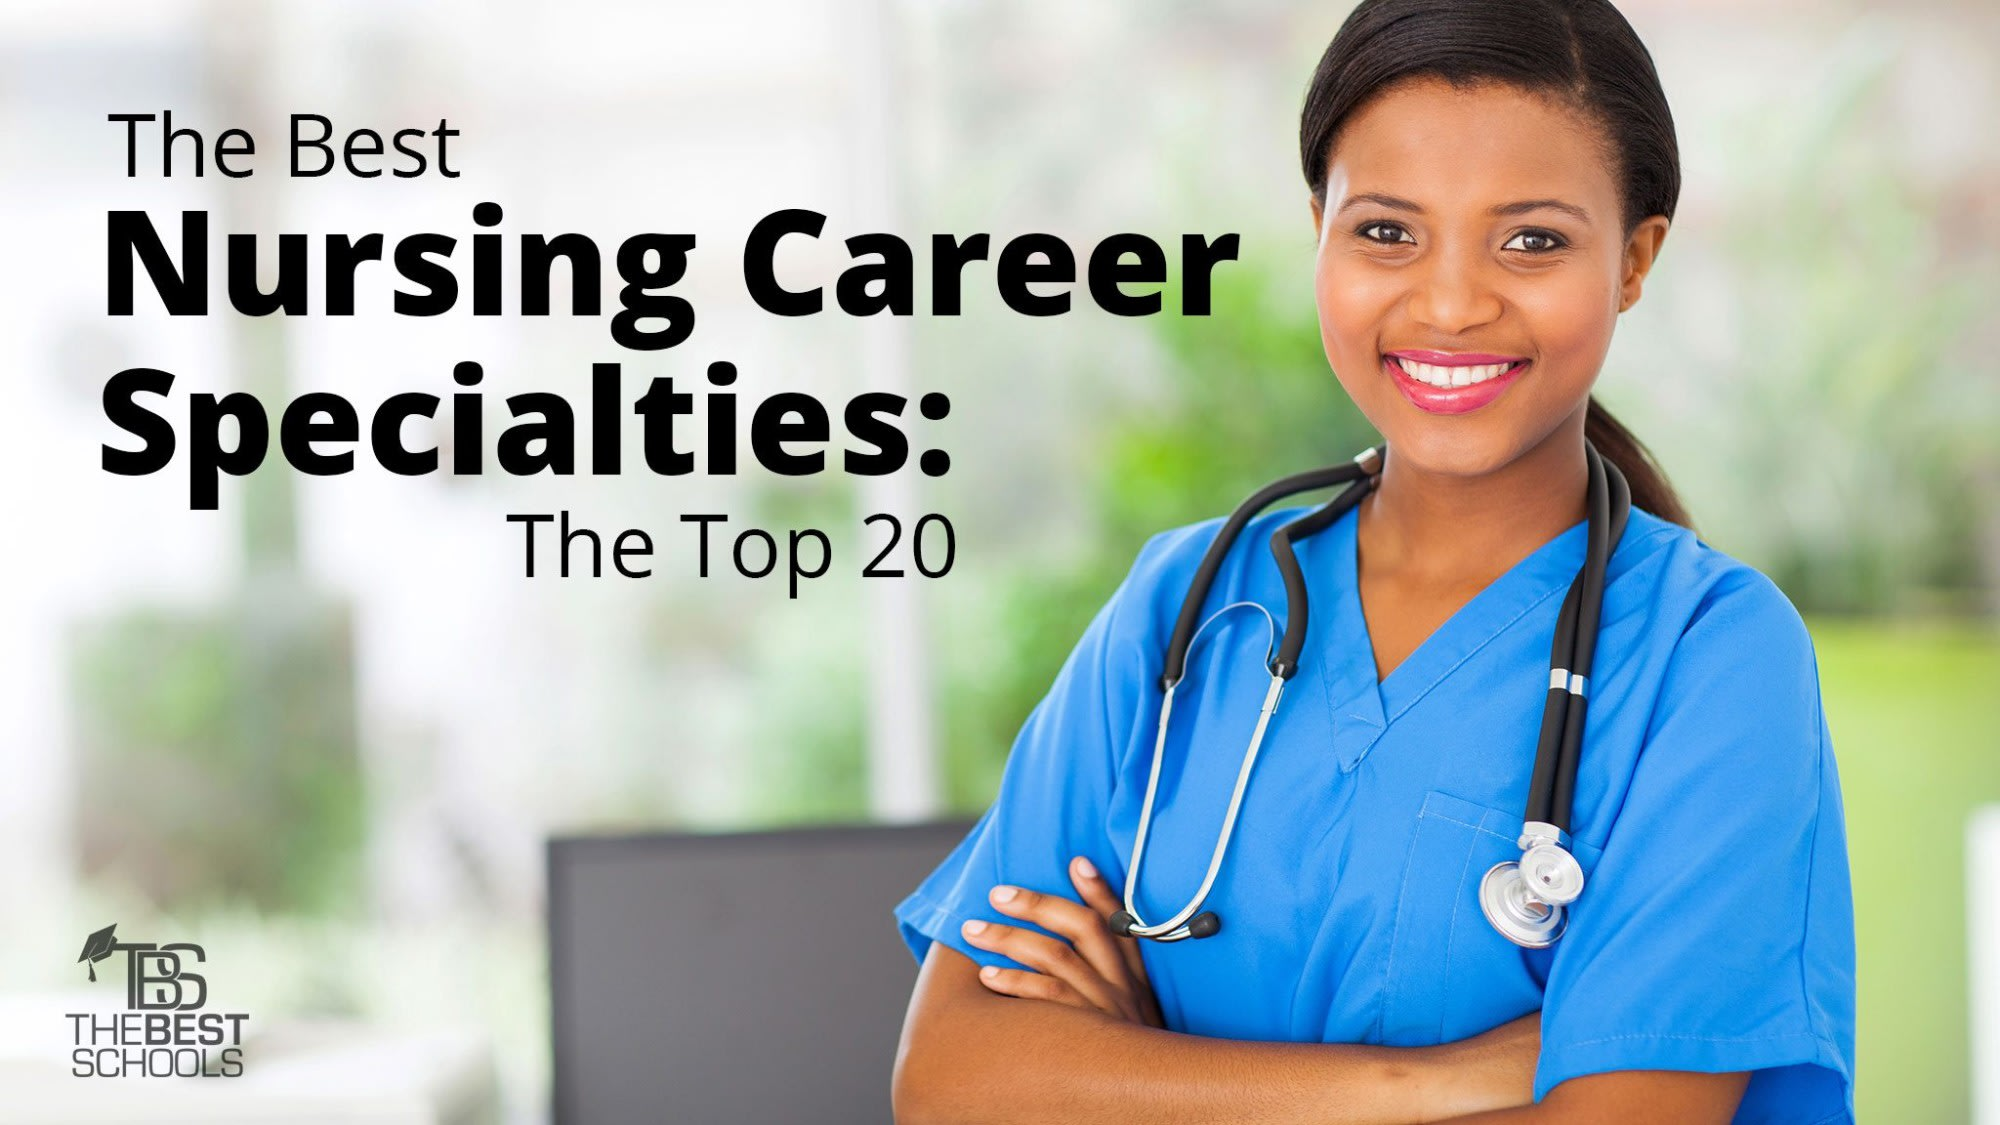 e8827e6a6b1b9 The Best Nursing Careers and Specialties | TheBestSchools.org